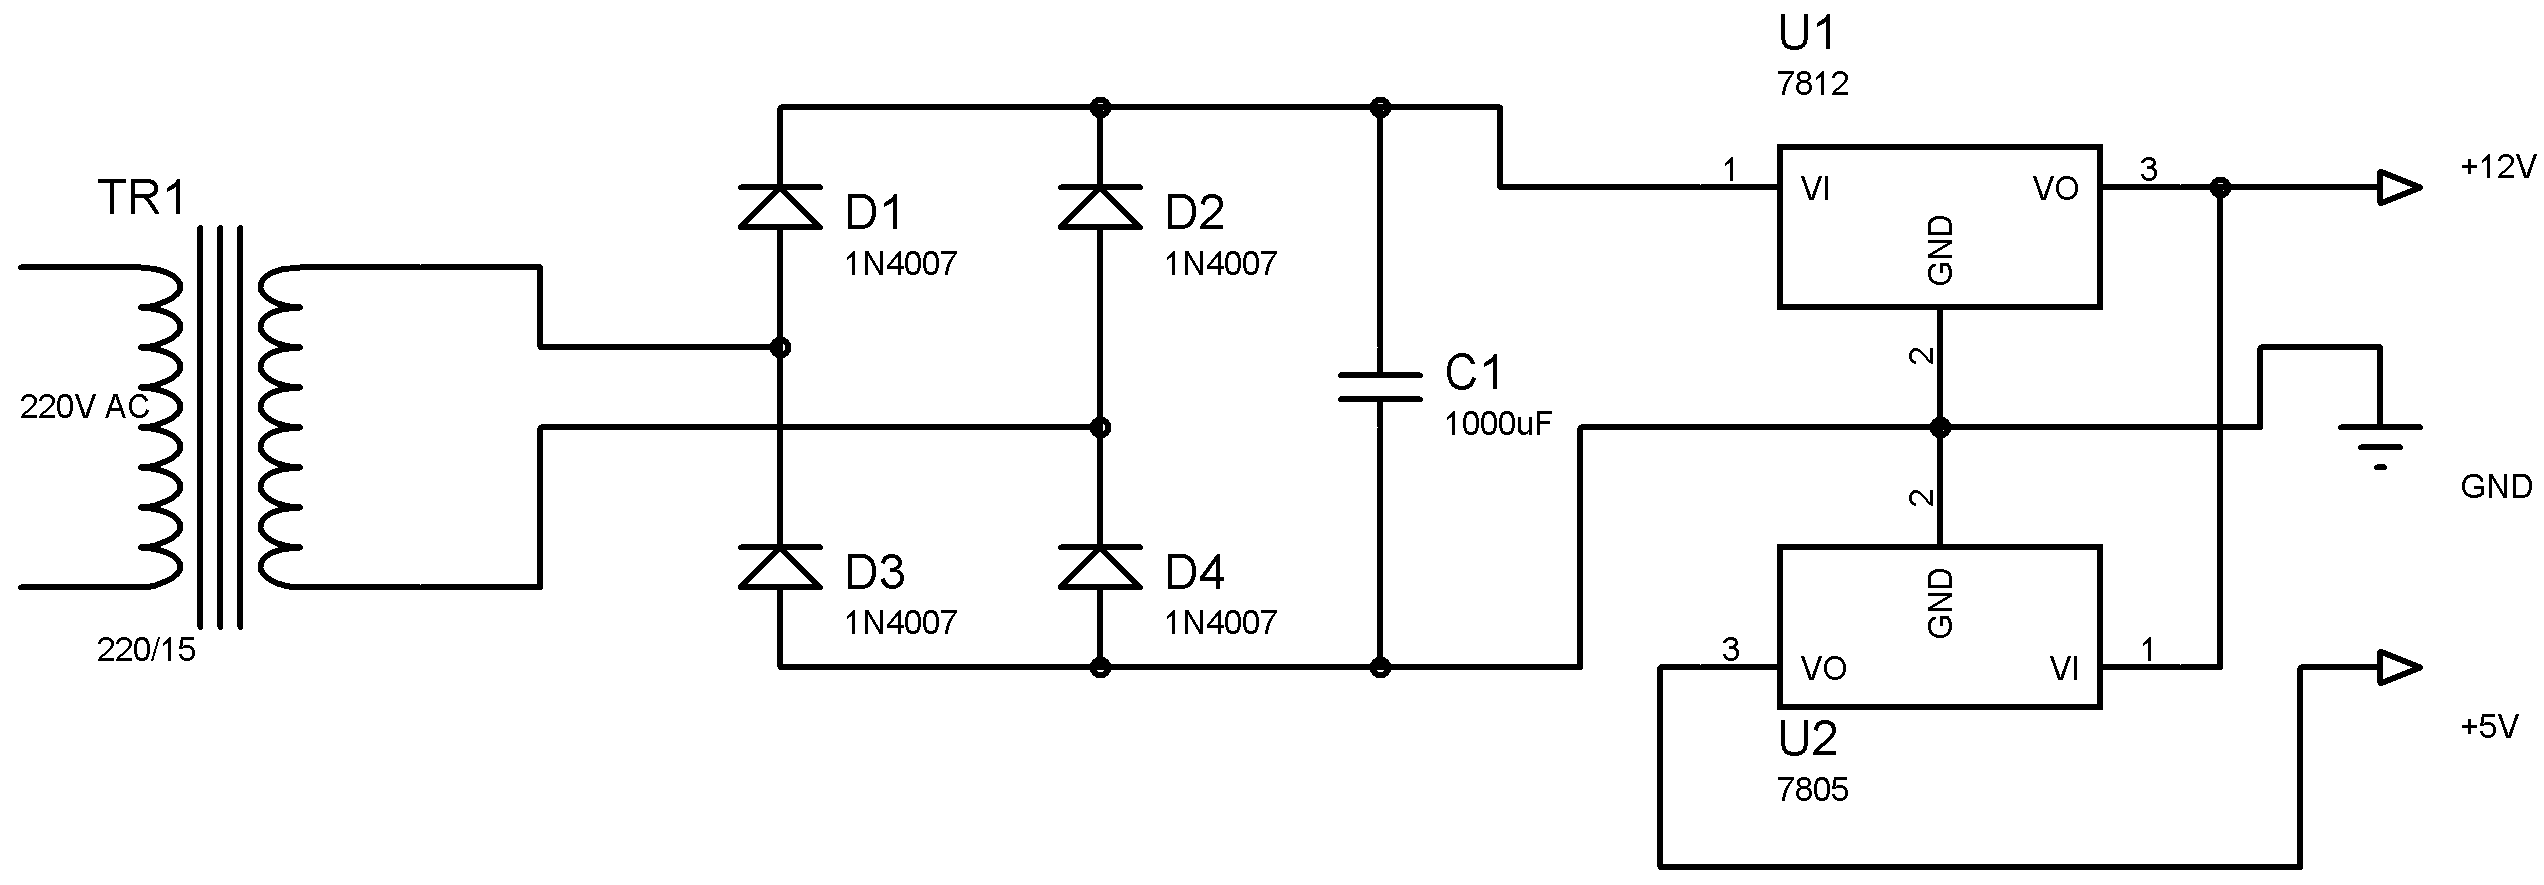 Water Level Indicator Controller Using Pic Microcontroller Components Of A Sound Meter Schematic 2water Sensing Section